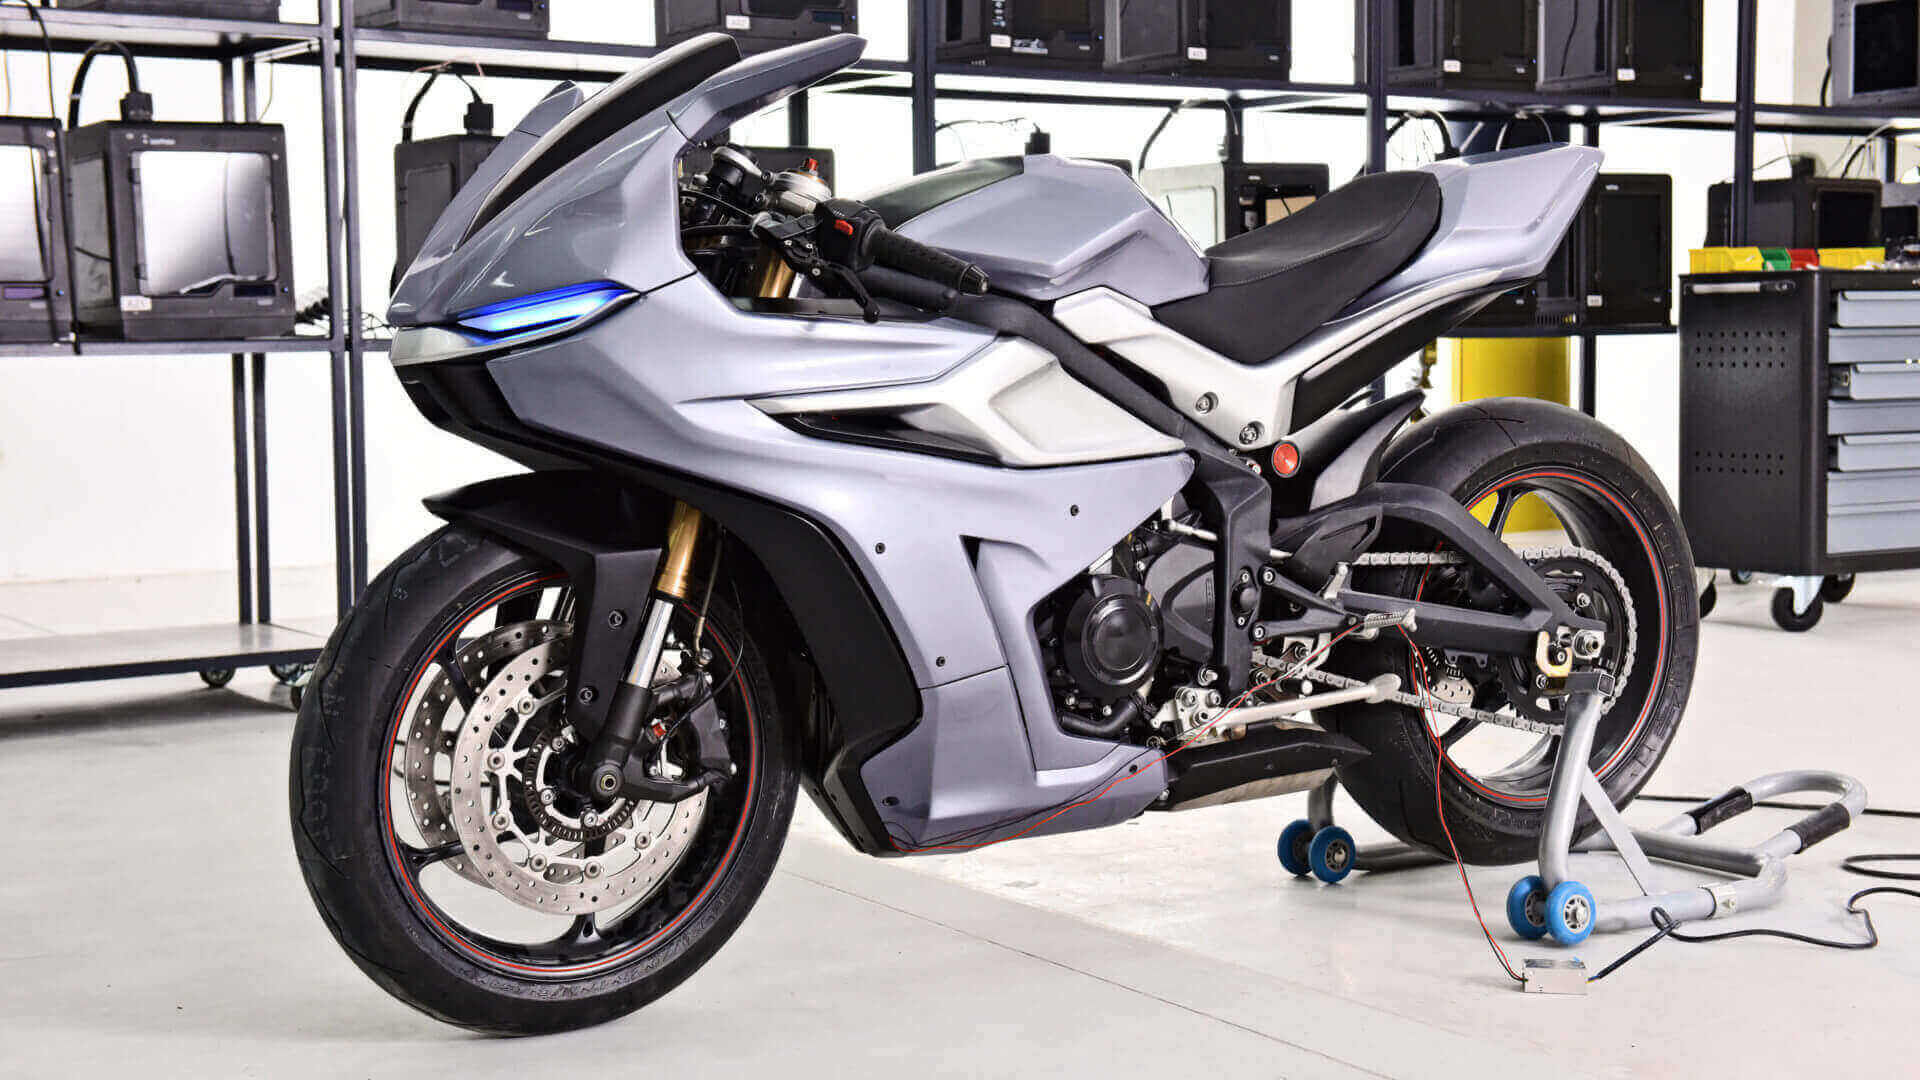 Motorcycle Modded With Zortrax M300 3D Printer | All3DP